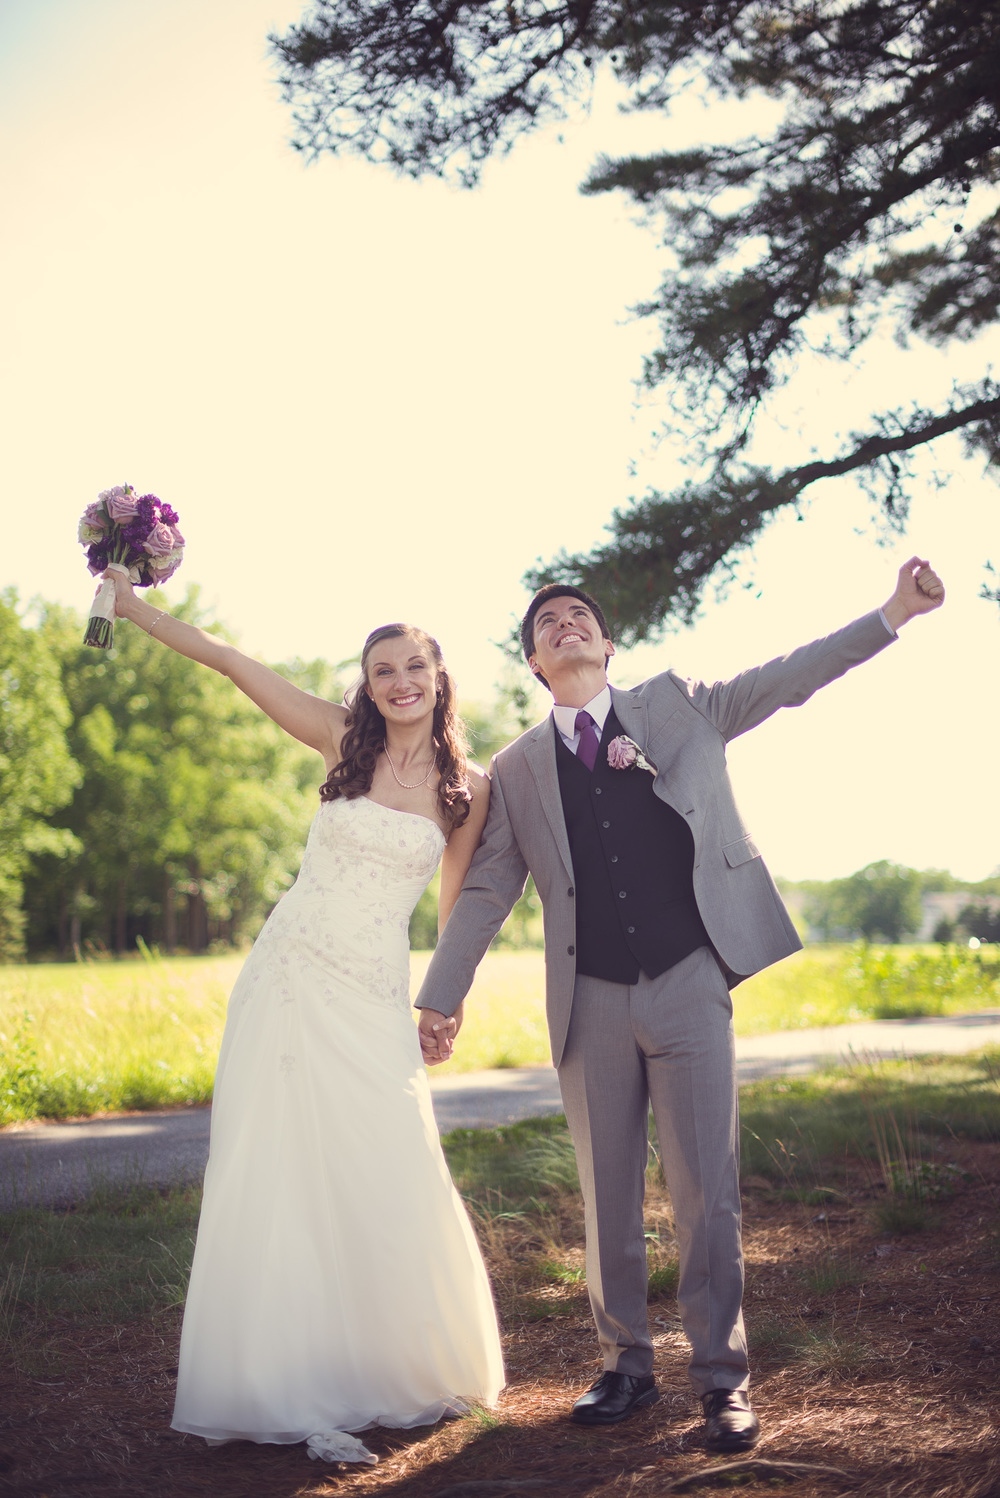 Blue Heron Pines Golf Club sunshine daytime wedding bride groom celebrate joy husband wife love portrait THPHOTO